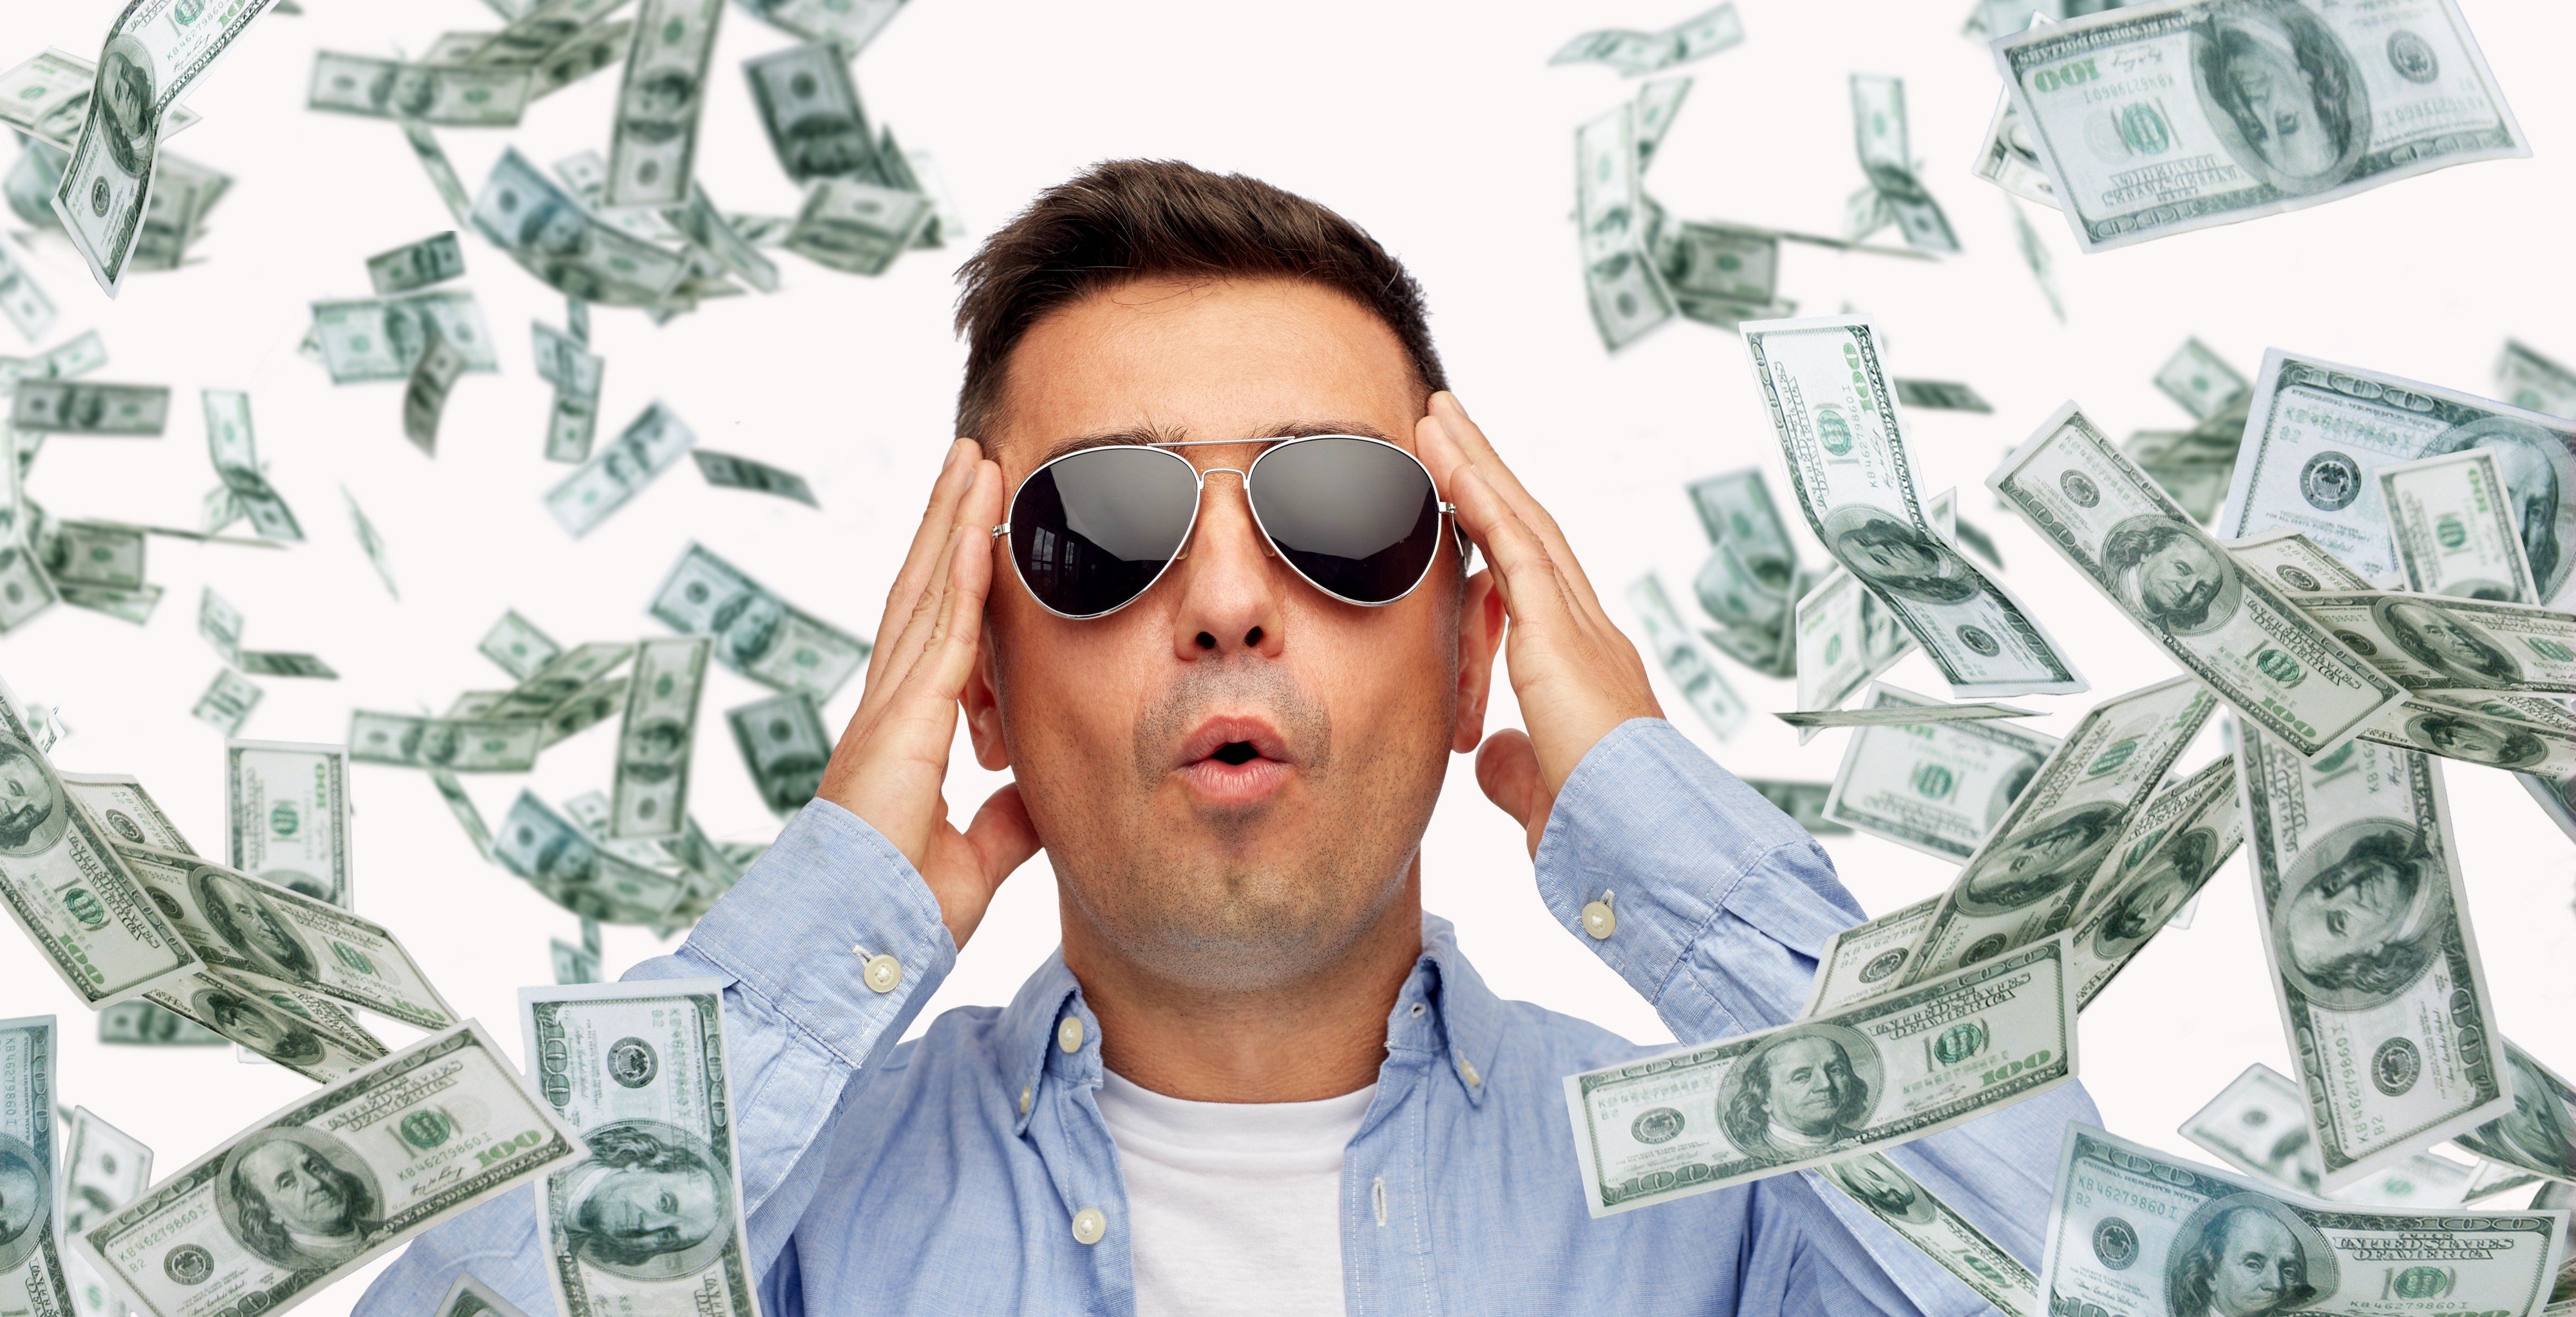 Close up picture of a surprised middle-aged latin man with sunglasses, surrounded by heaps of $100 bills